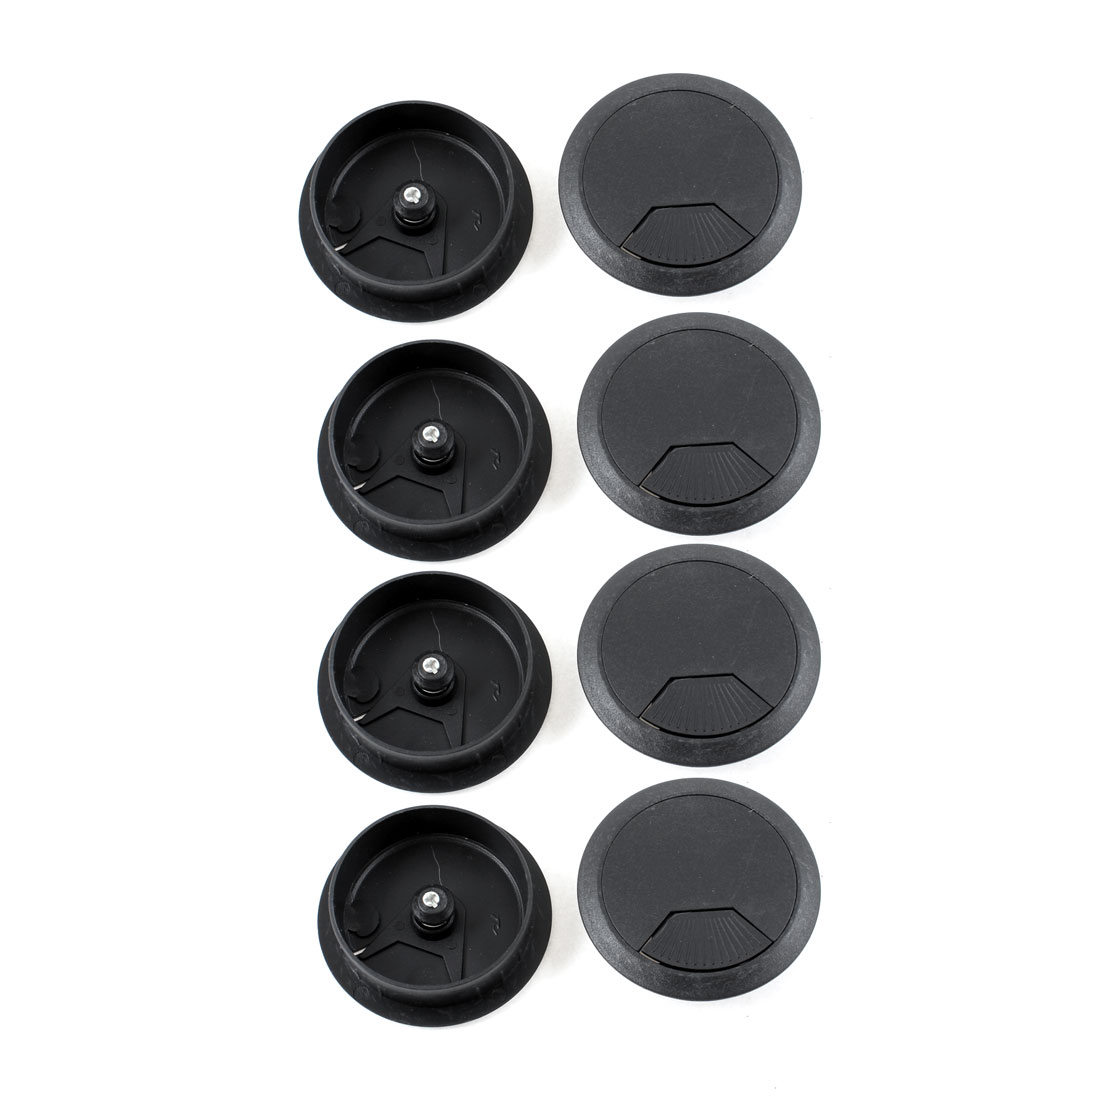 10 Pcs Computer Desk Black Plastic Grommet Cable Hole Covers 53mm